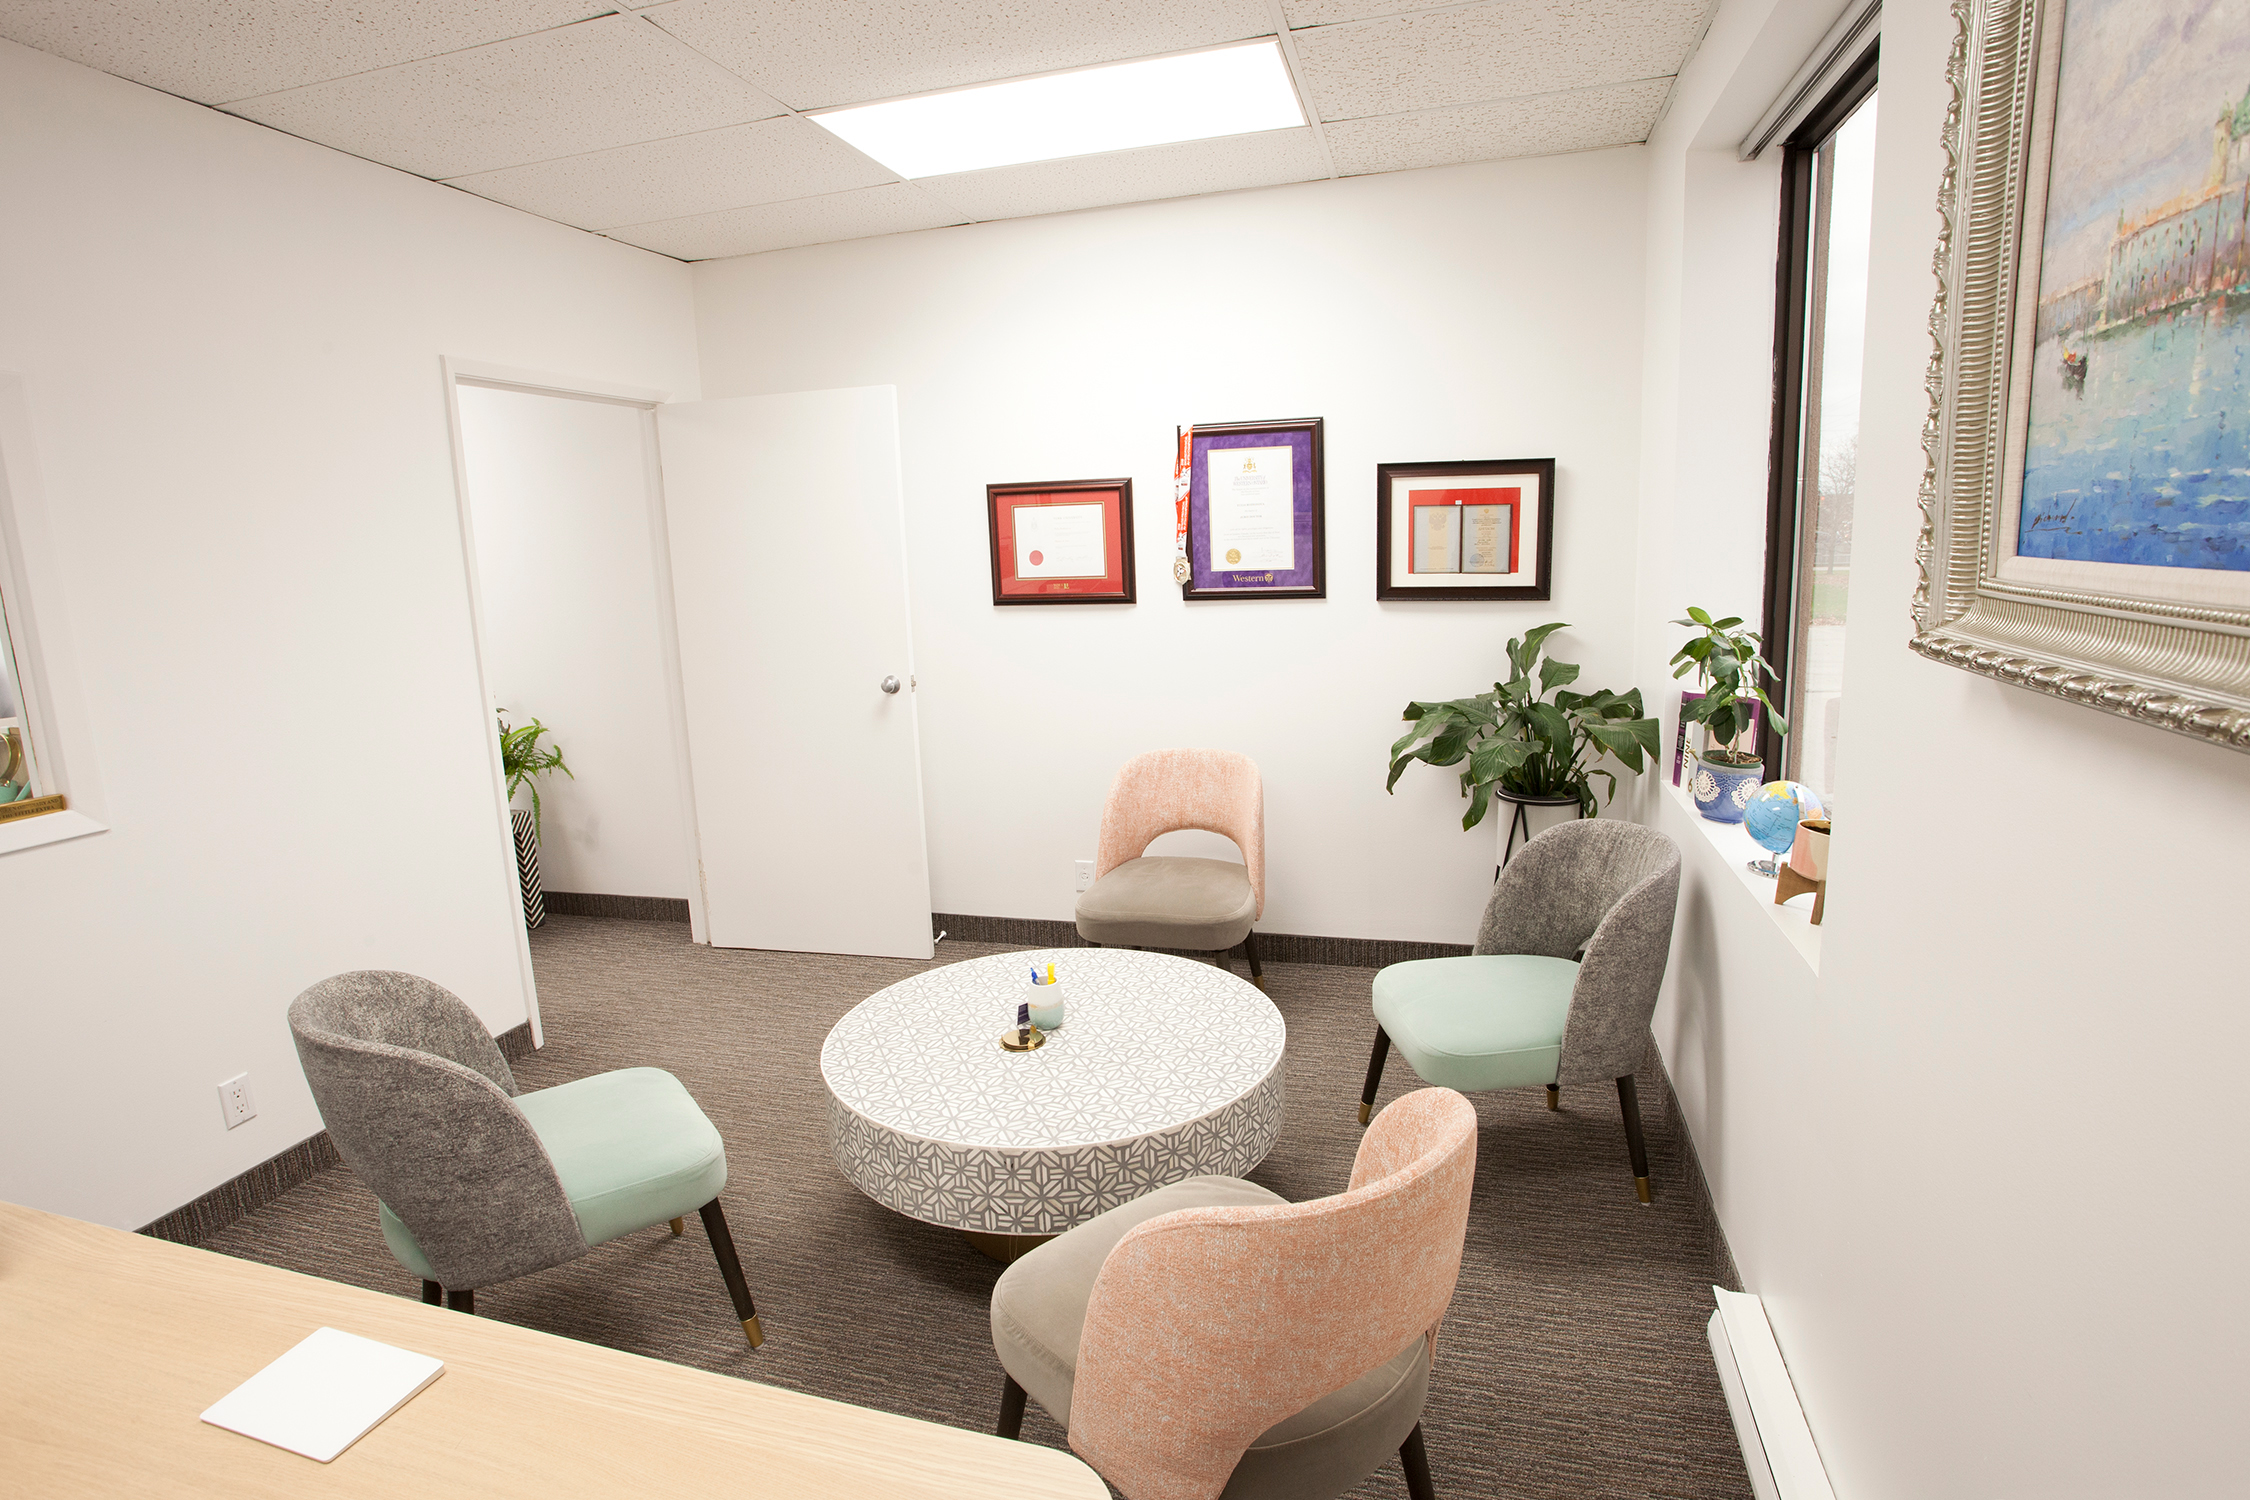 LOYR Law Office Inside design pastel colors broad view